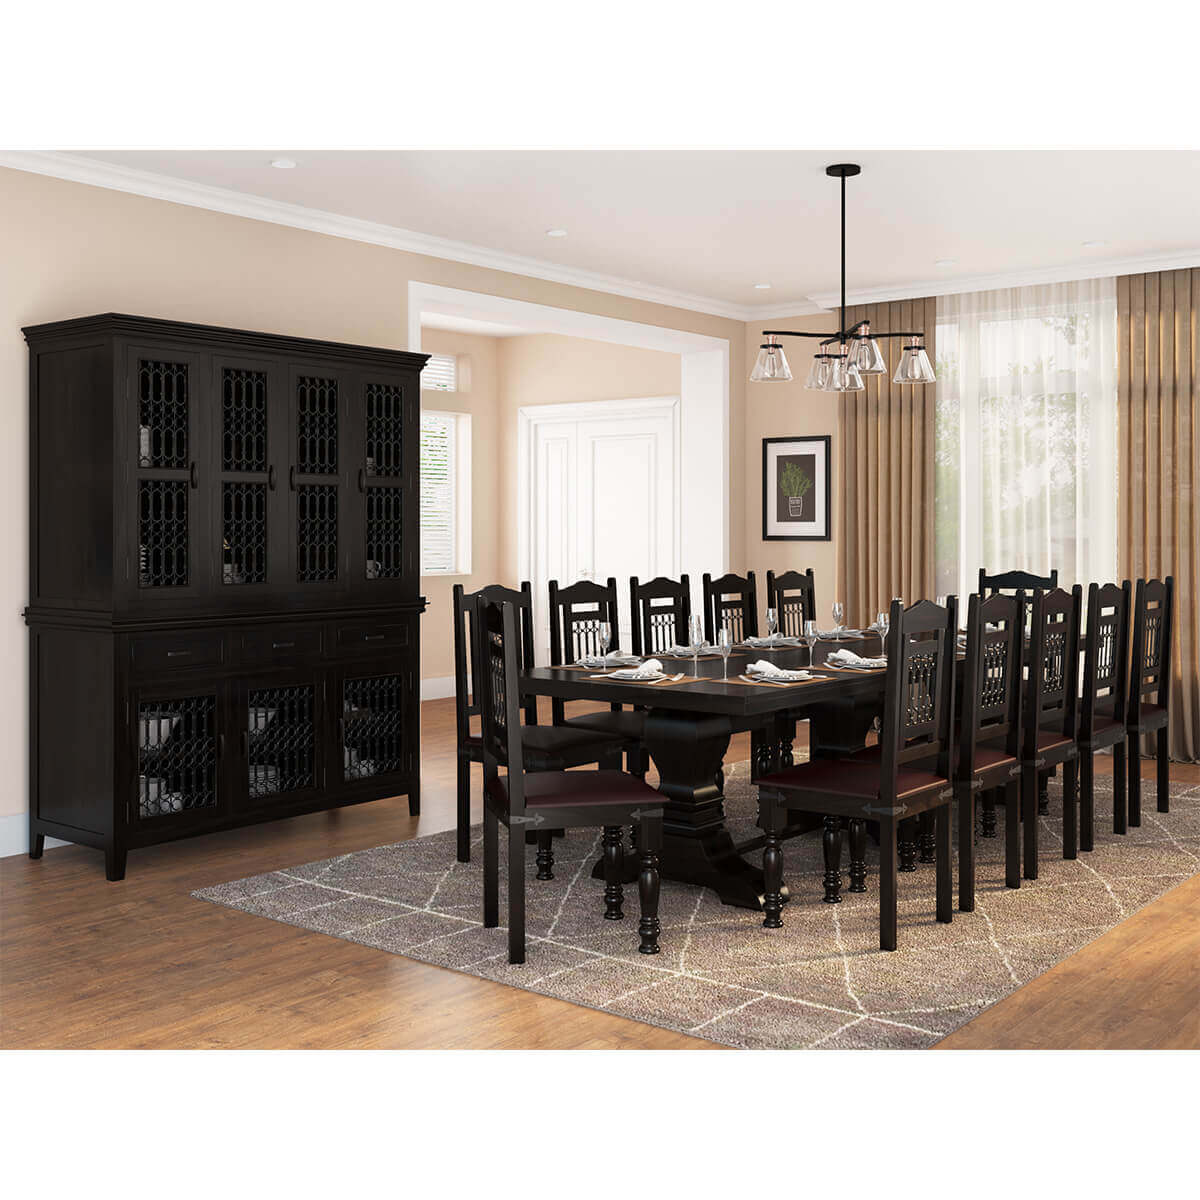 Solid Wood Dining Room Set: Harold Traditional Solid Wood 14 Piece Dining Room Set